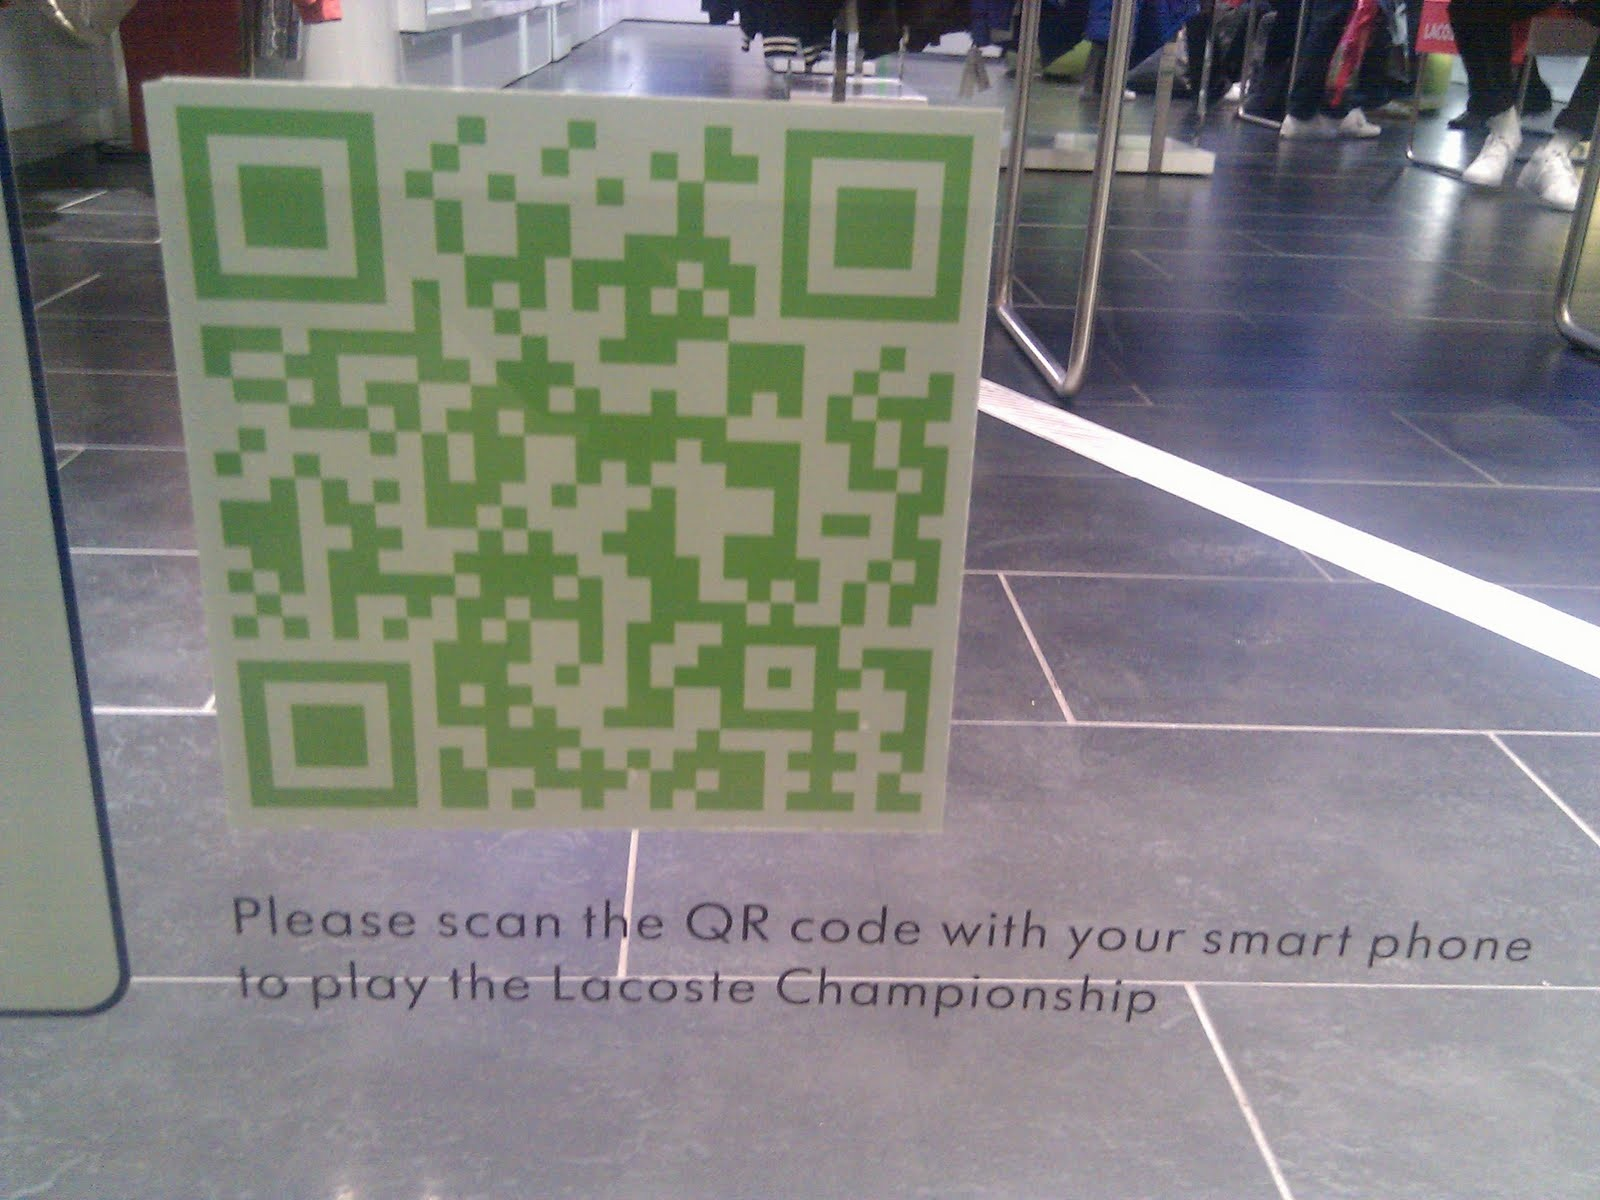 Do people still use QR codes in 2019? - Quora